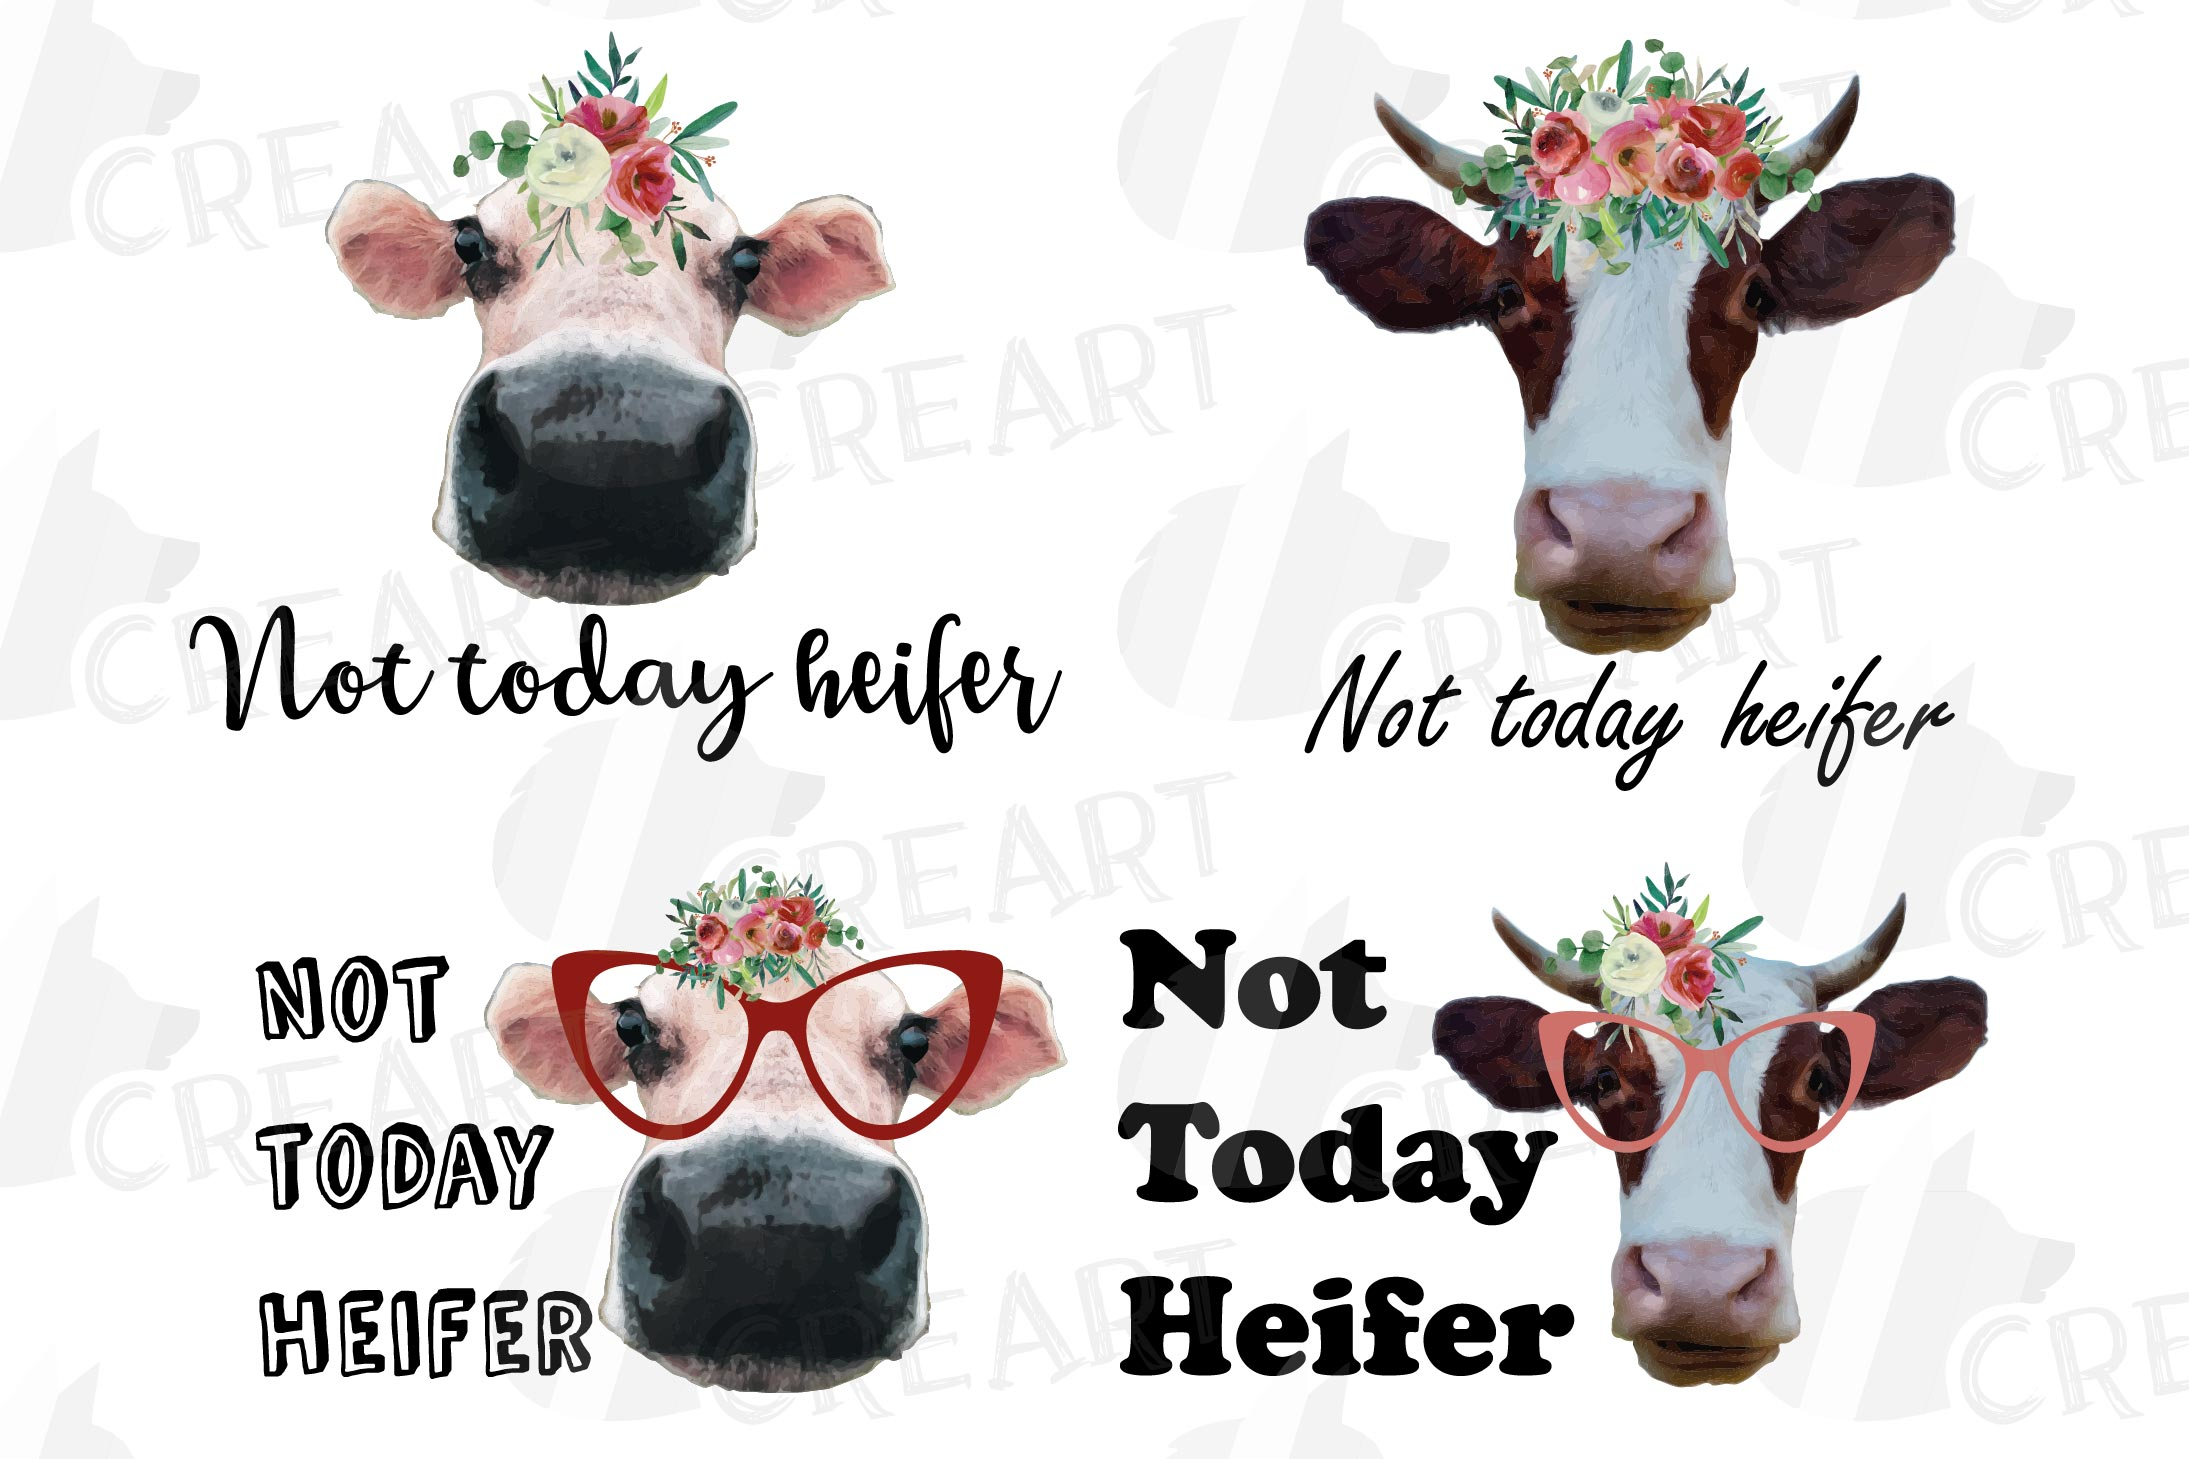 Cows with floral crown clip art. Not today heifer graphic example image 1